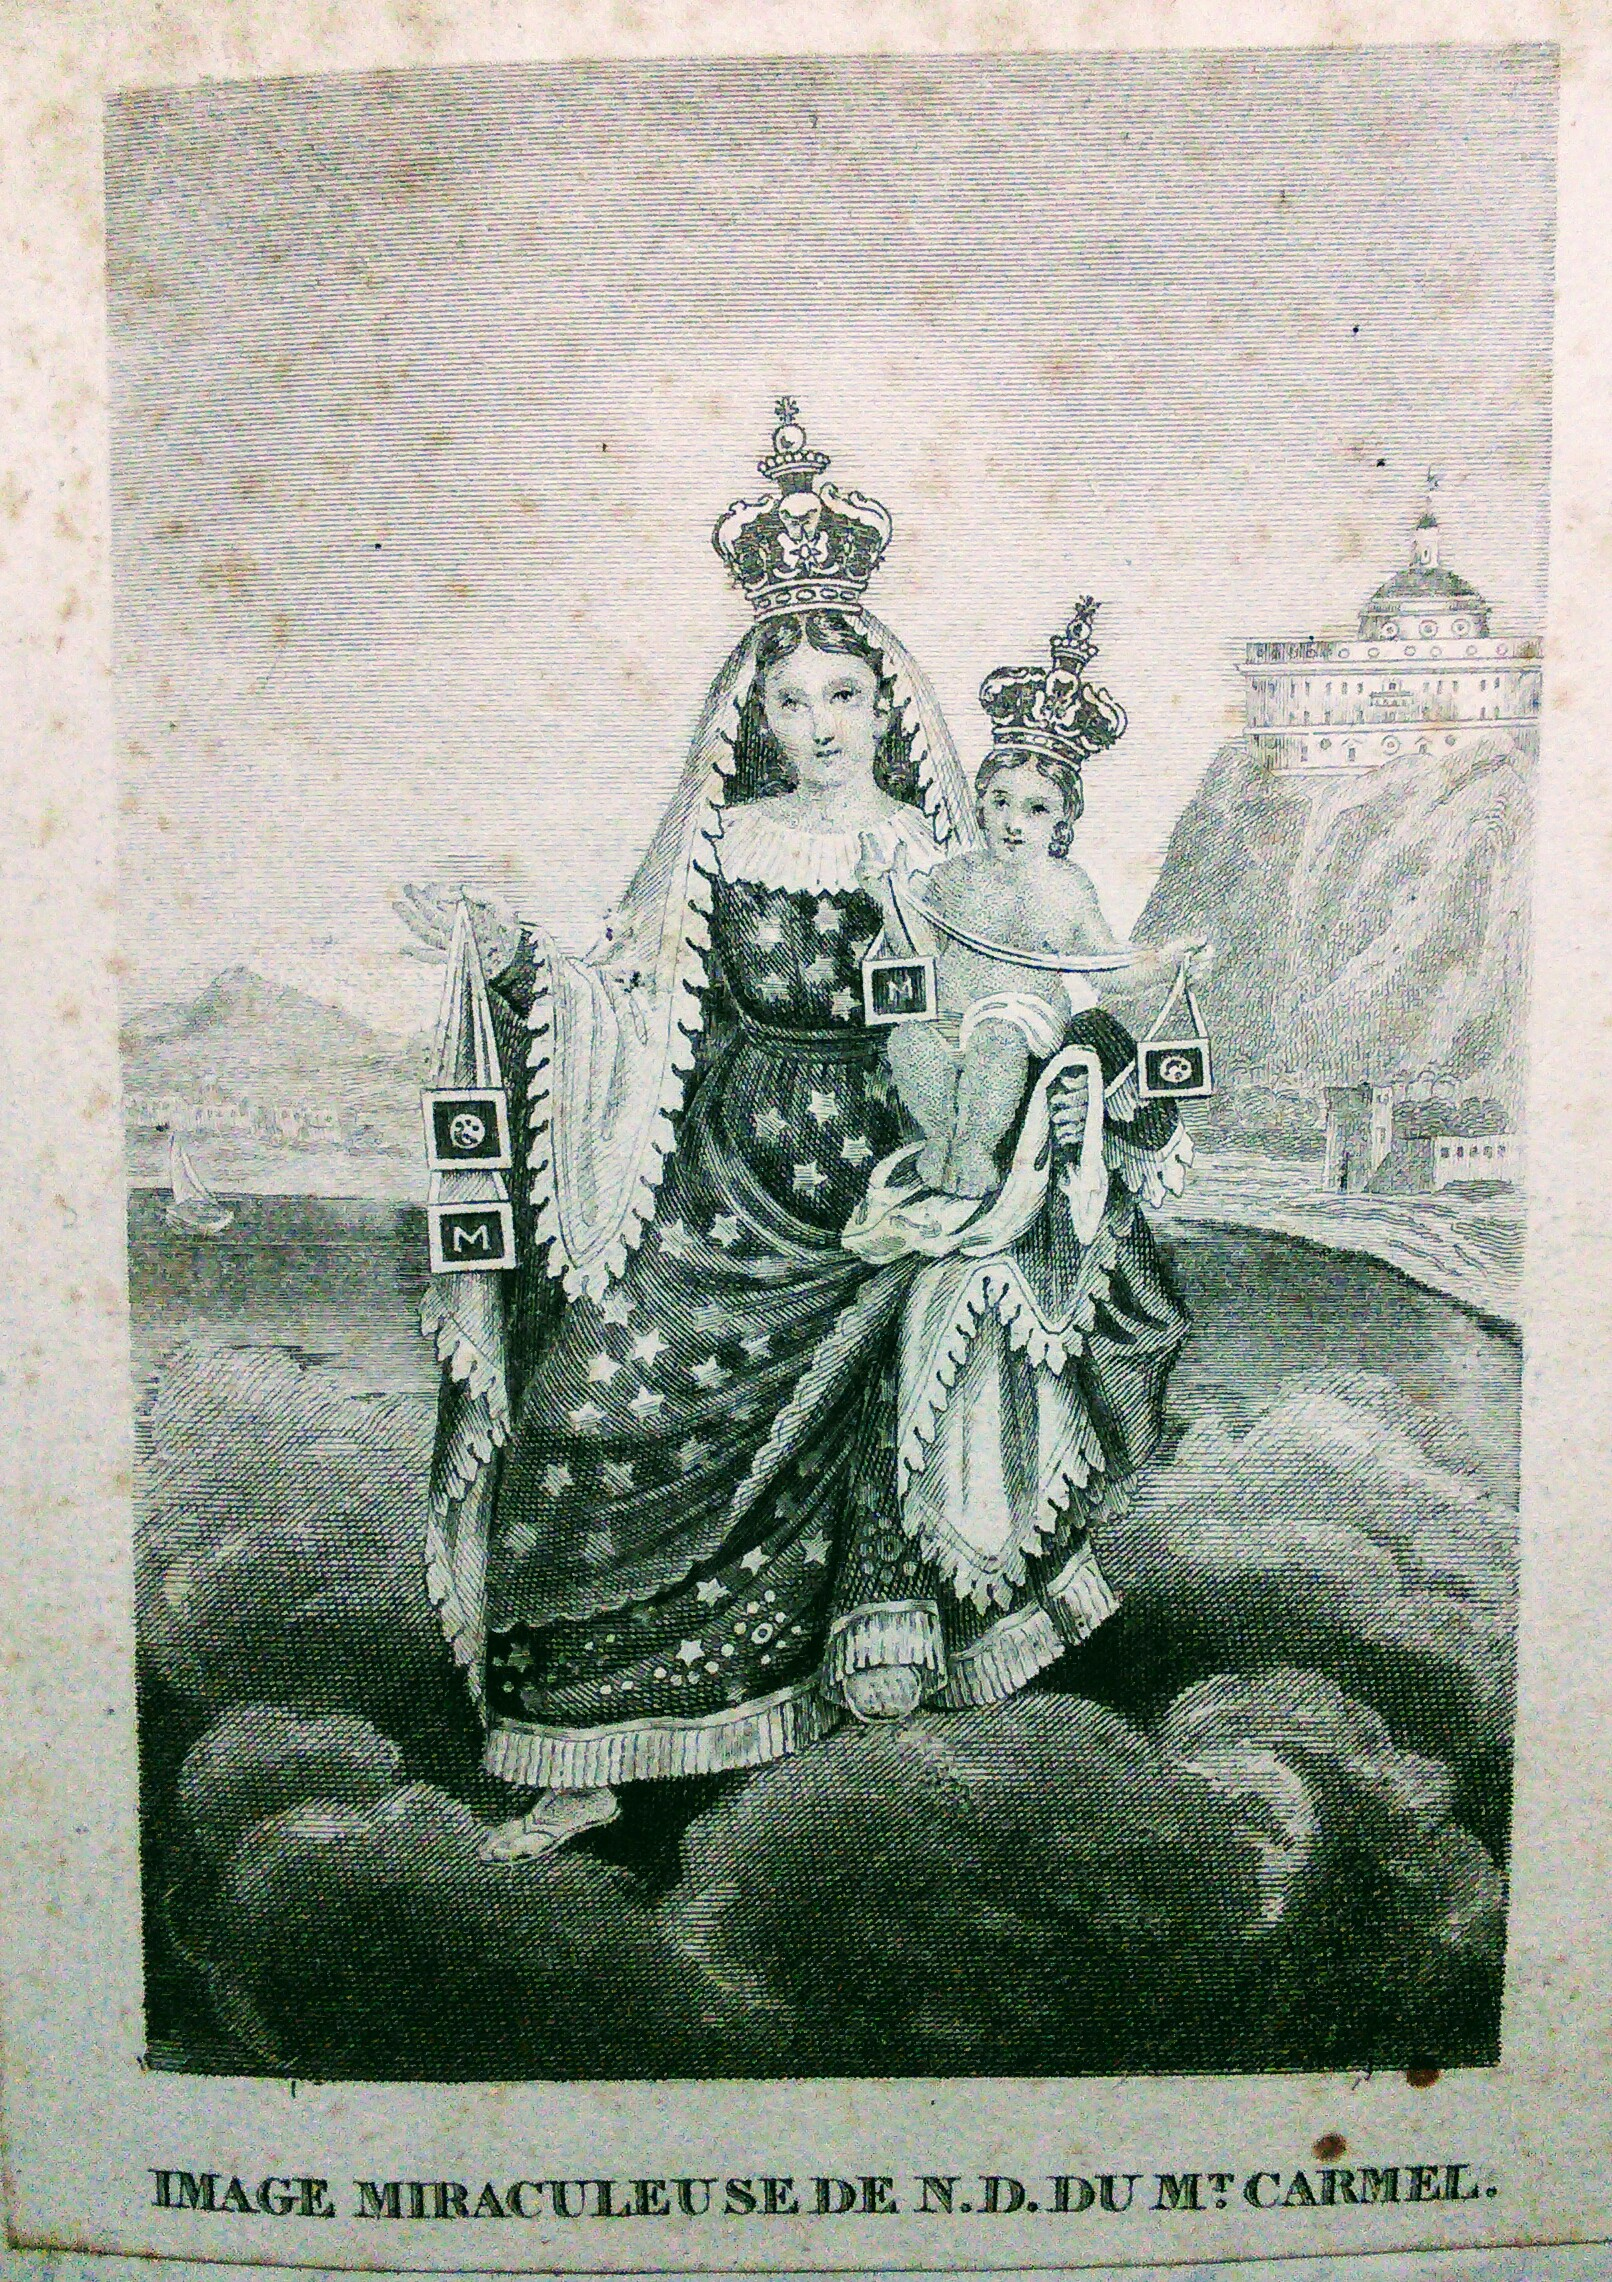 Prayer card of Our Lady of Mount Carmel holding out towards her scapulars, a saint to whom Margaret Coulston had great devotion.